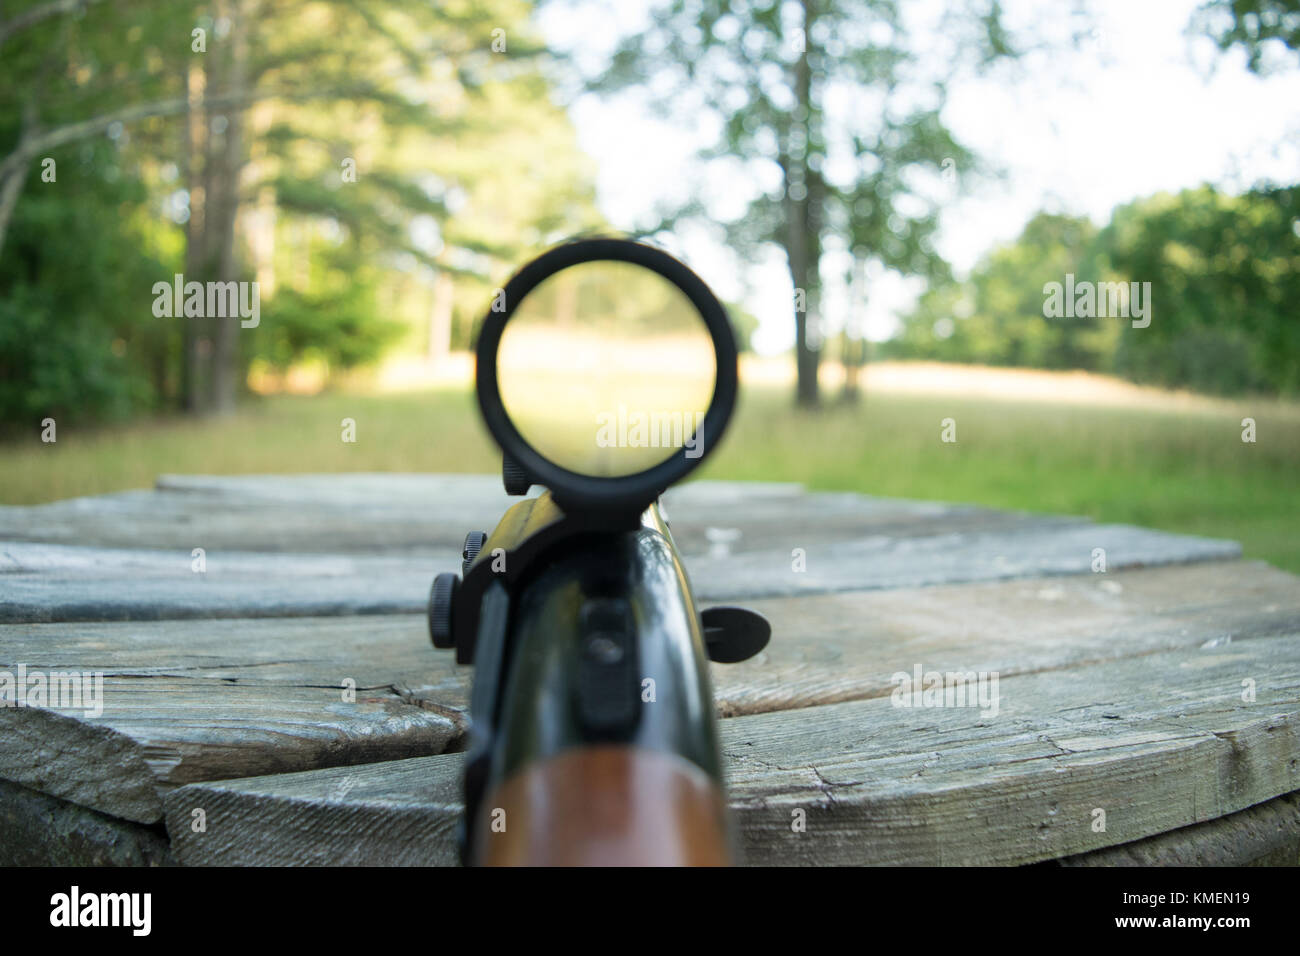 Looking Down The Barrel Of A Shot Gun In An Open Field Stock Photo Alamy